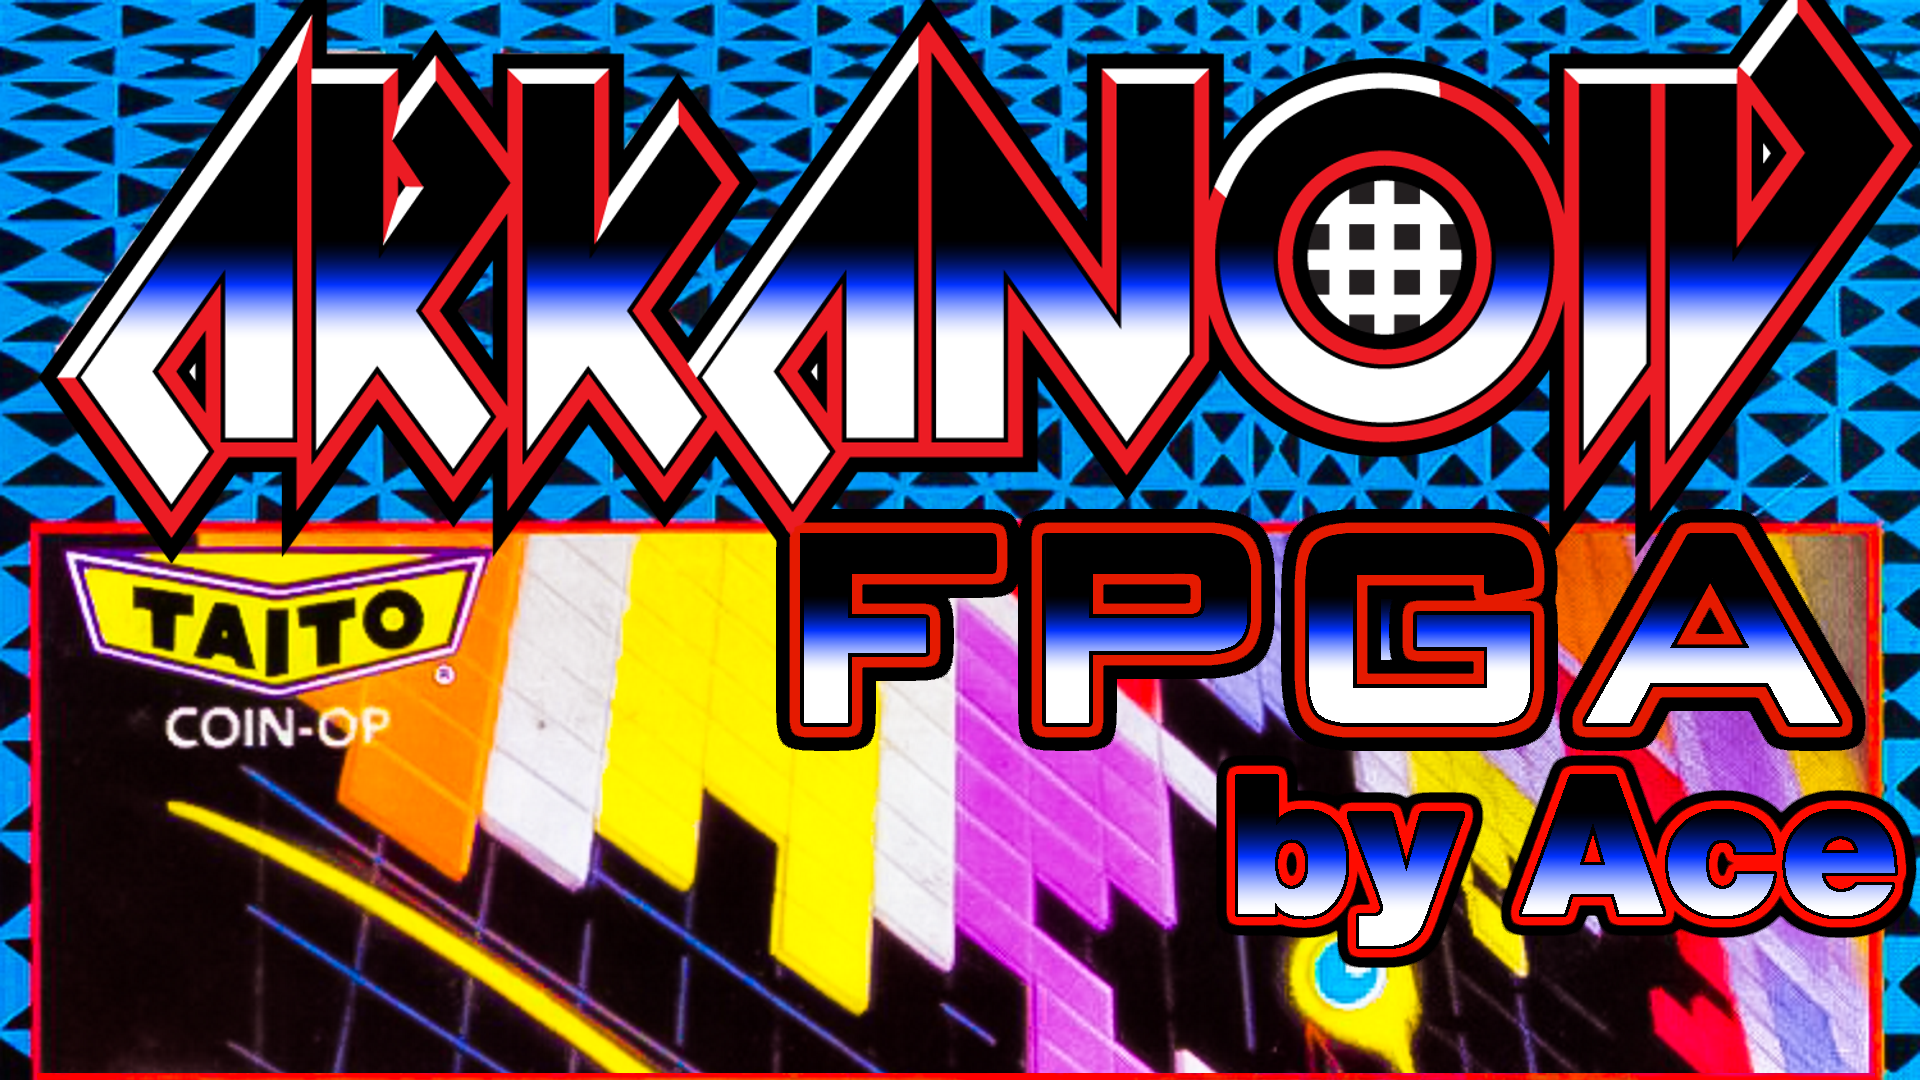 Arkanoid Arcade FPGA Core for MiSTer by Ace